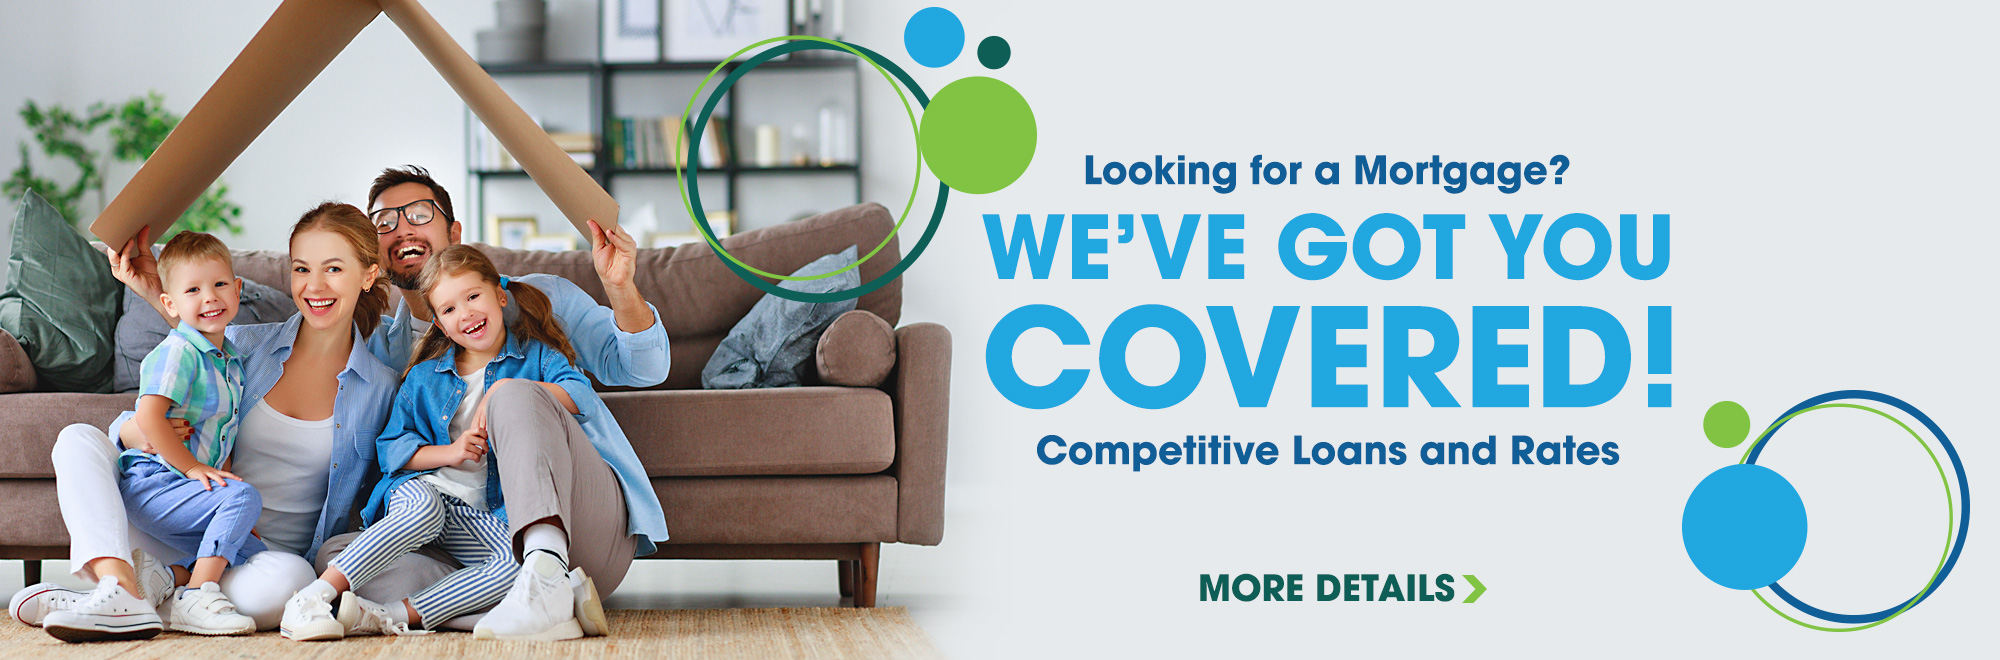 Looking for a Mortgage? We've got you covered with competitive loans and rates